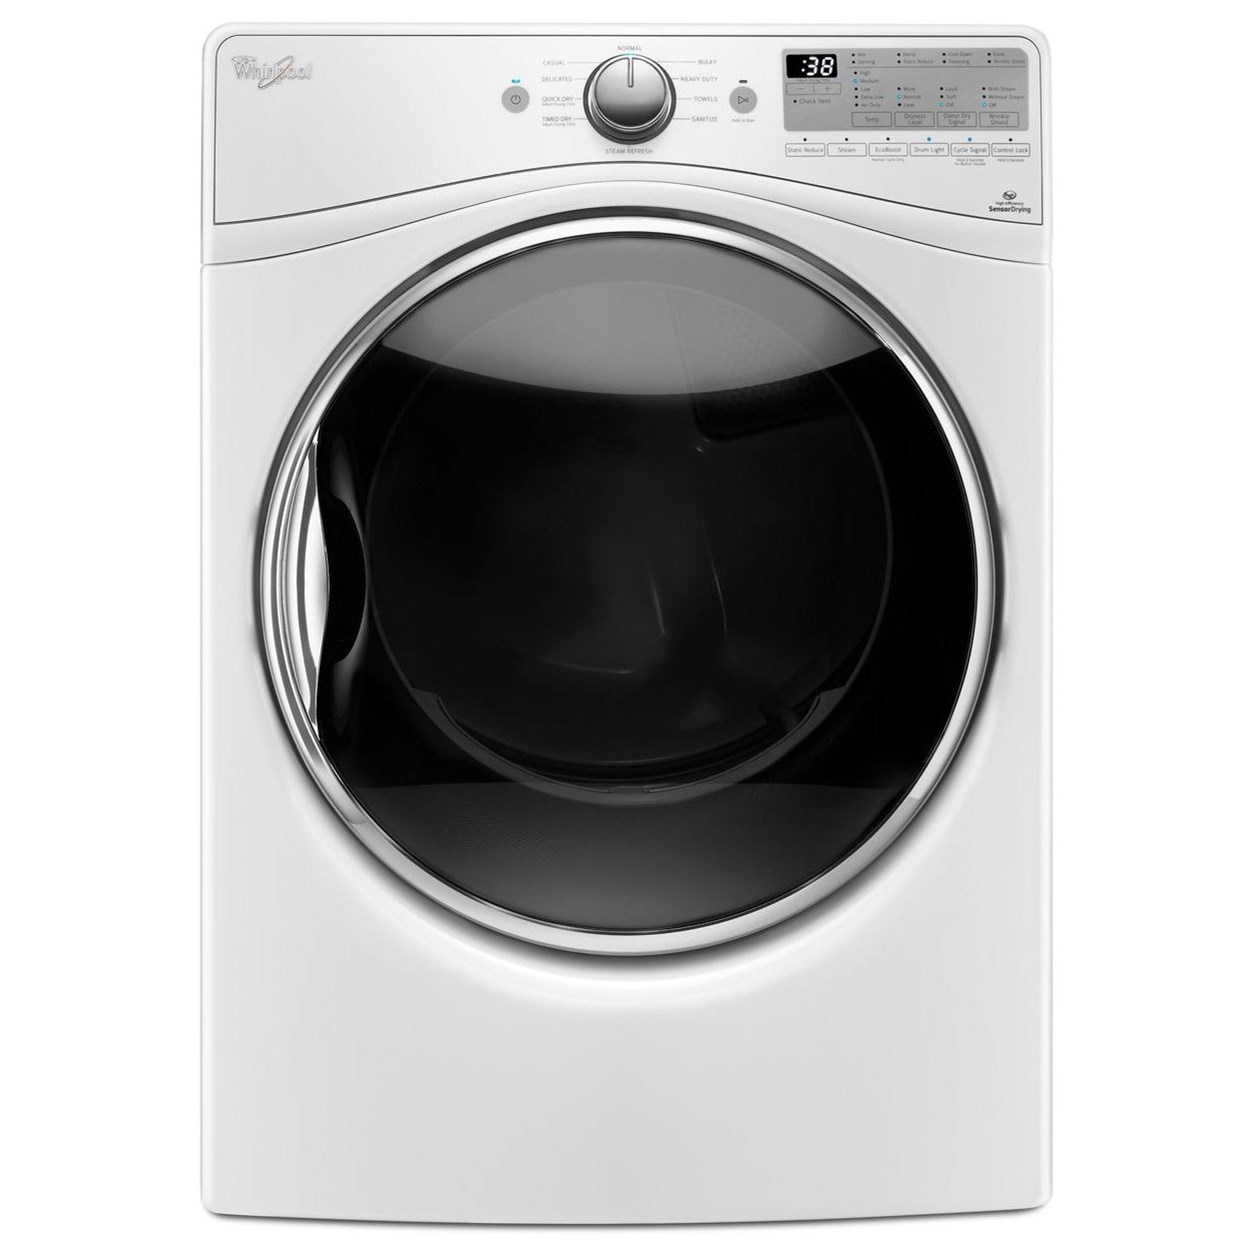 Whirlpool Electric Front Load Dryers 7.4 cu. ft. Electric Dryer - Item Number: WED92HEFW